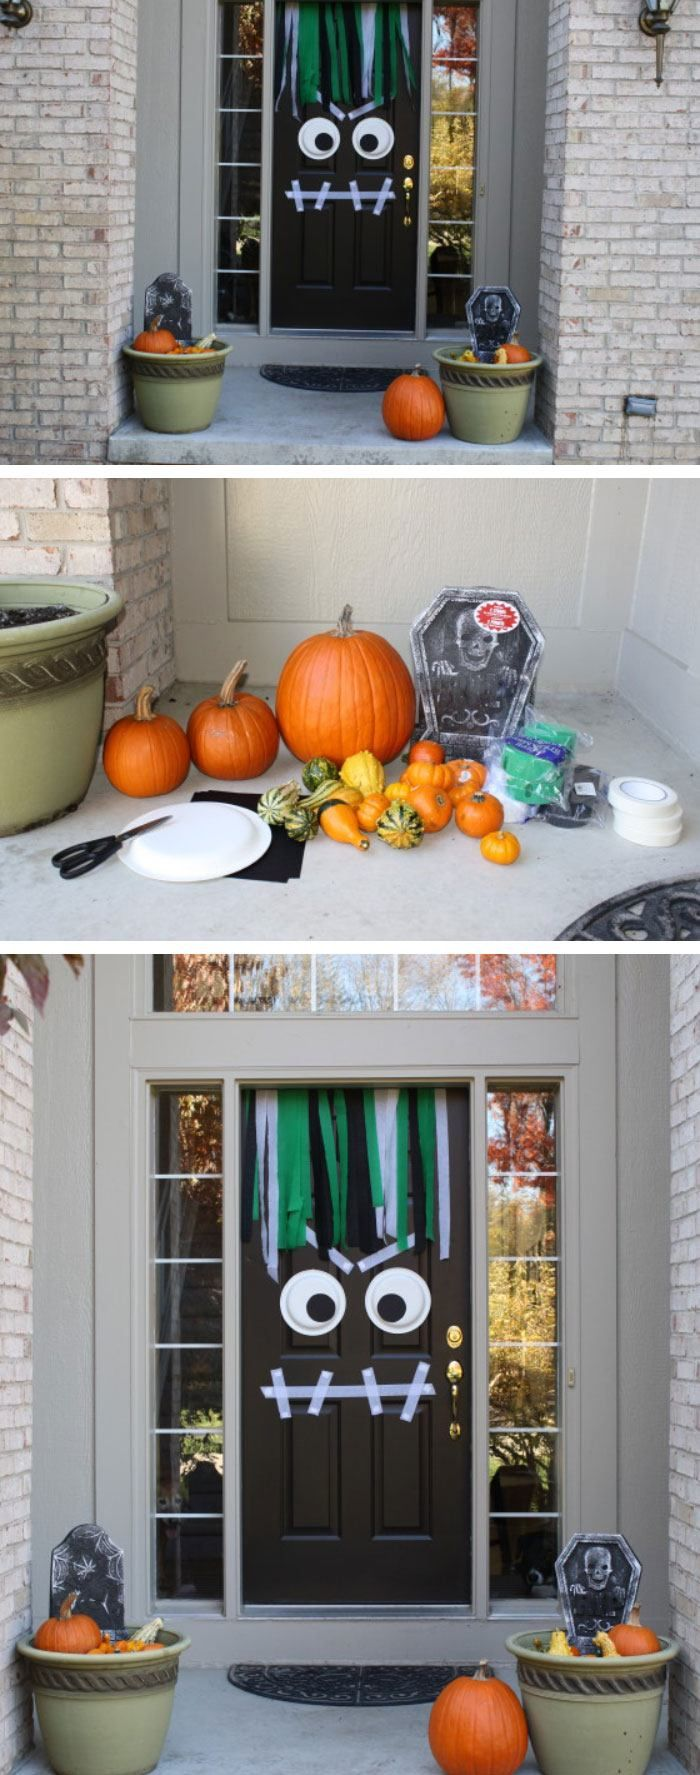 68 Halloween Party Decorations DIY Ideas For Kids on a Budget - Front Door Halloween Decorations